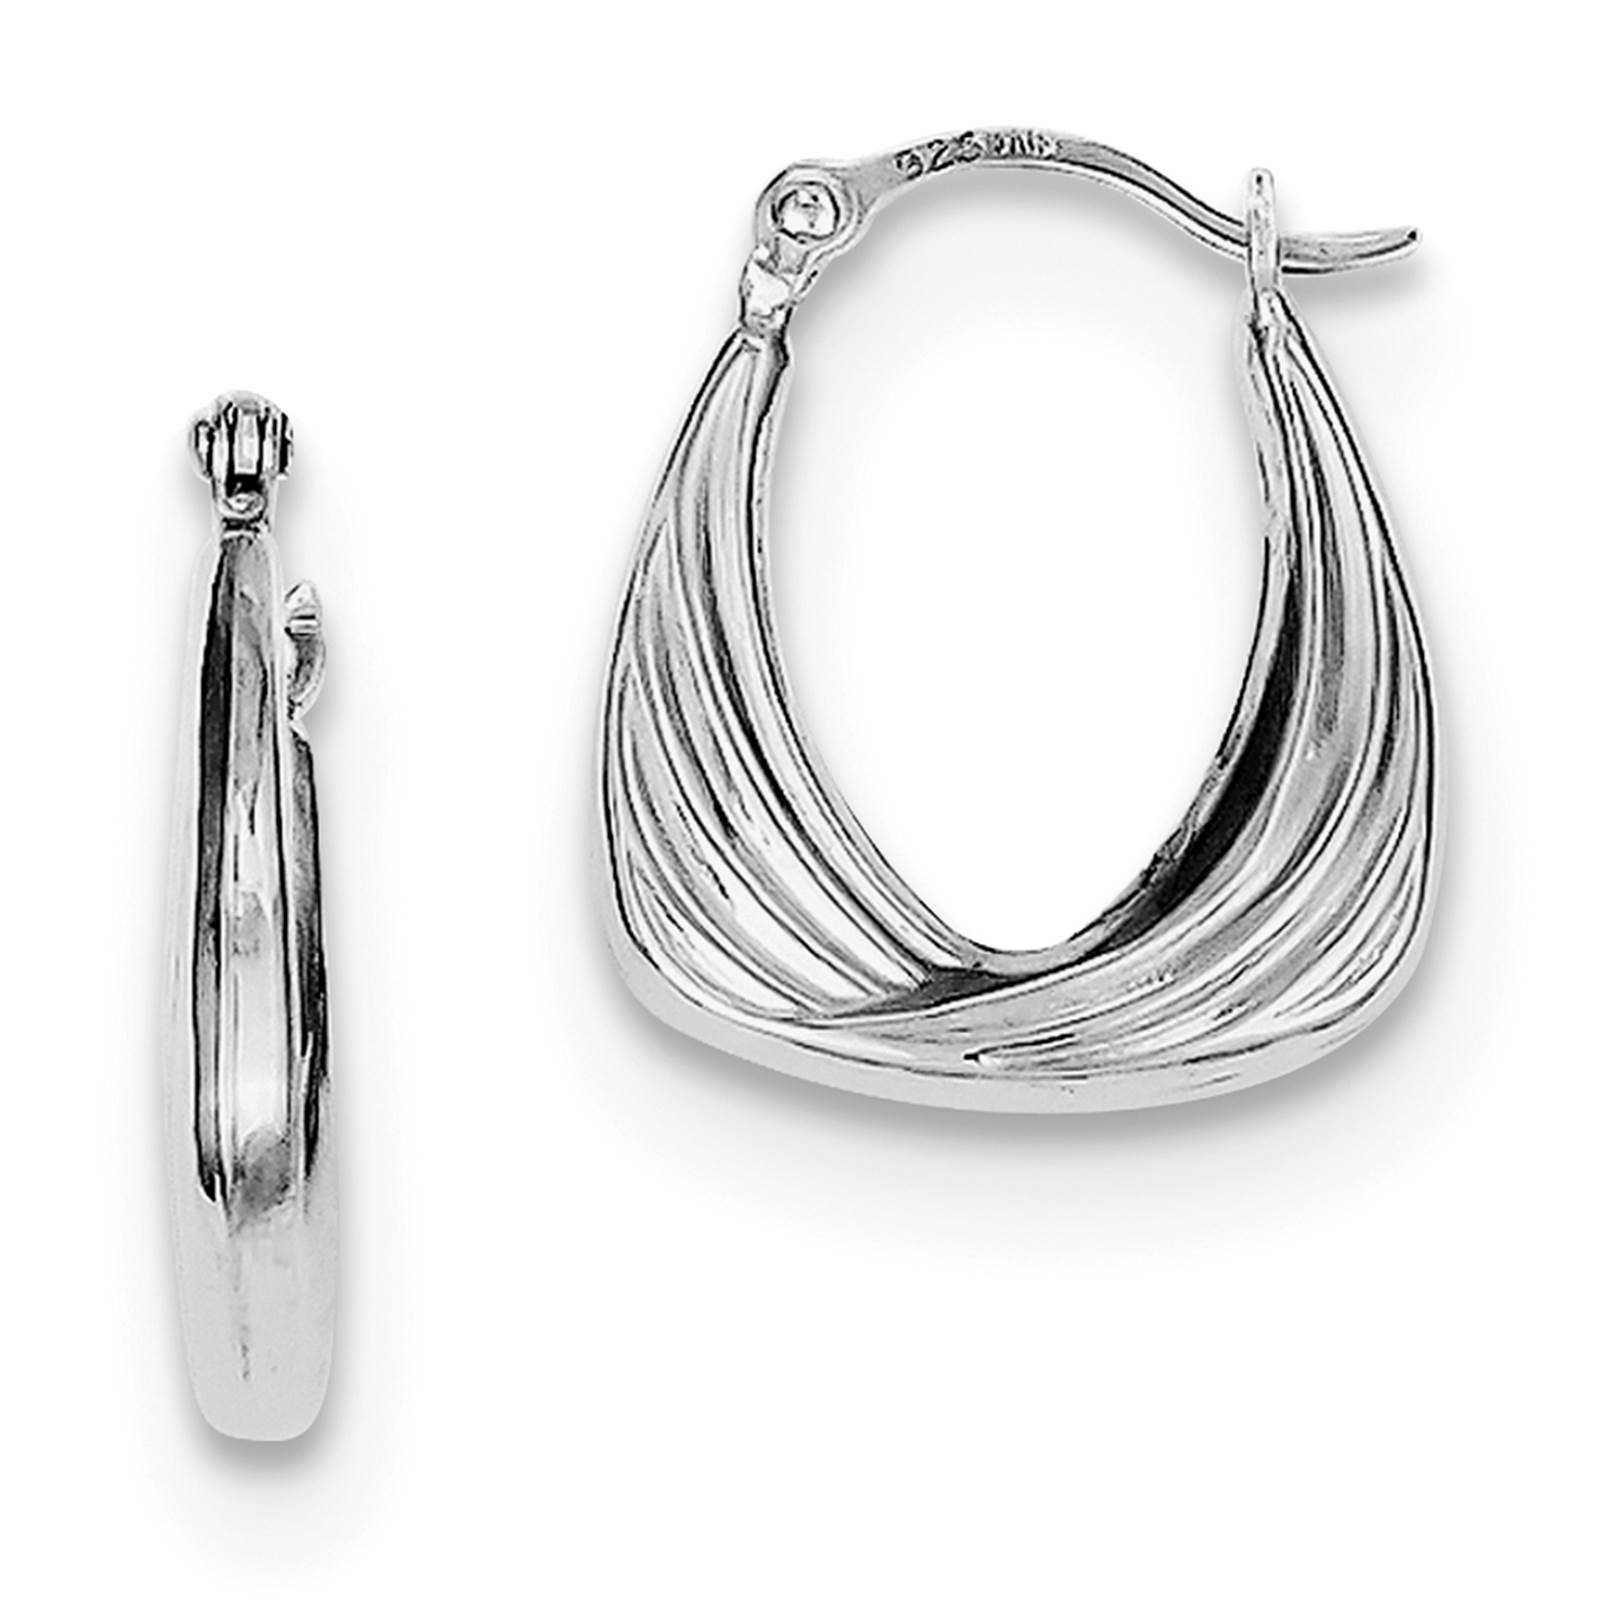 925 Sterling Silver Rhodium Plated Hollow Hinged Post 2.5mm x 15mm Hoop Earrings